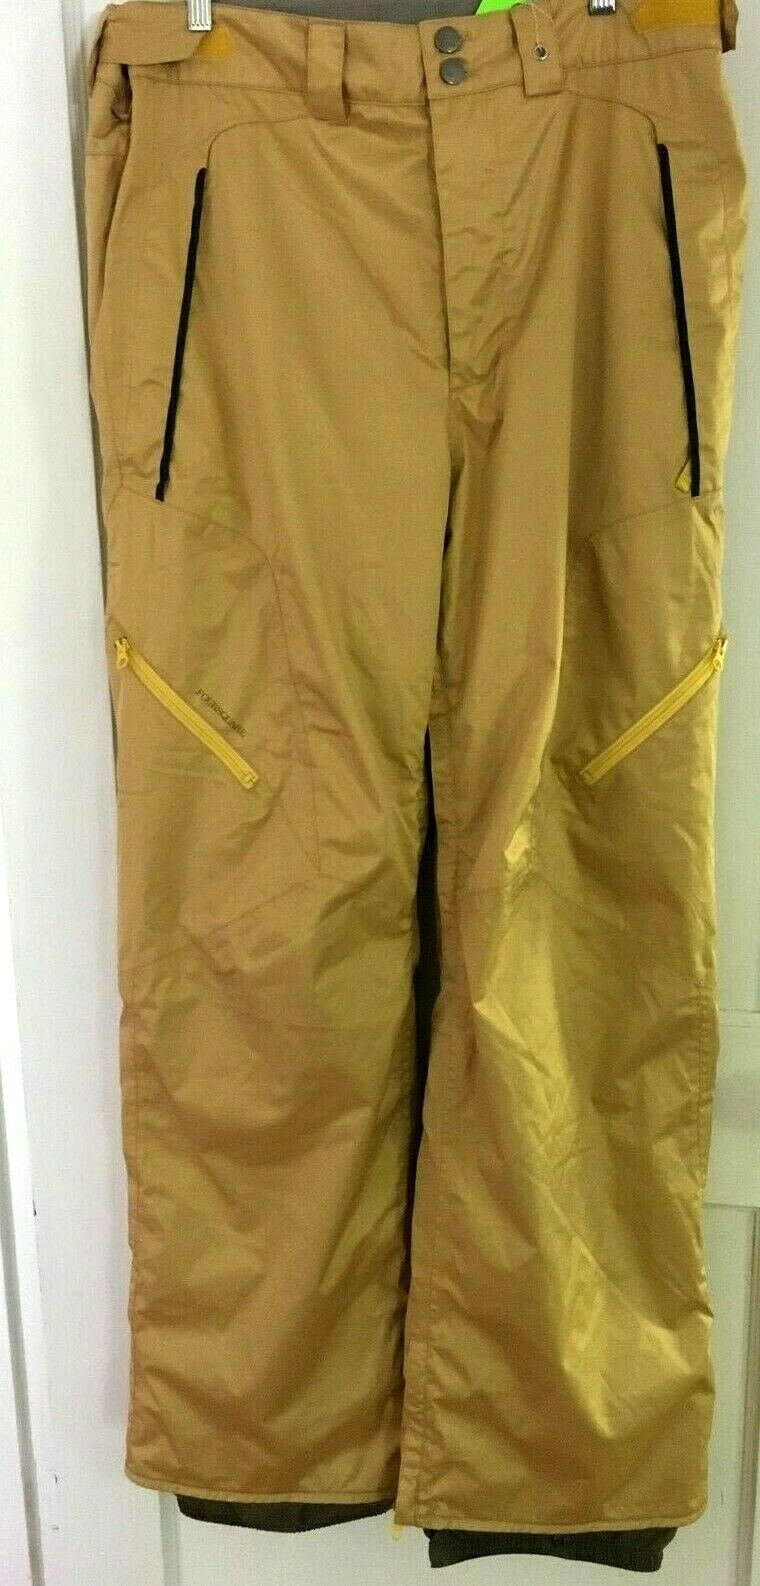 190 Men's Foursquare XL  Snowboard Pants gold NWOT  Waterproof Insulated Winter  cheaper prices